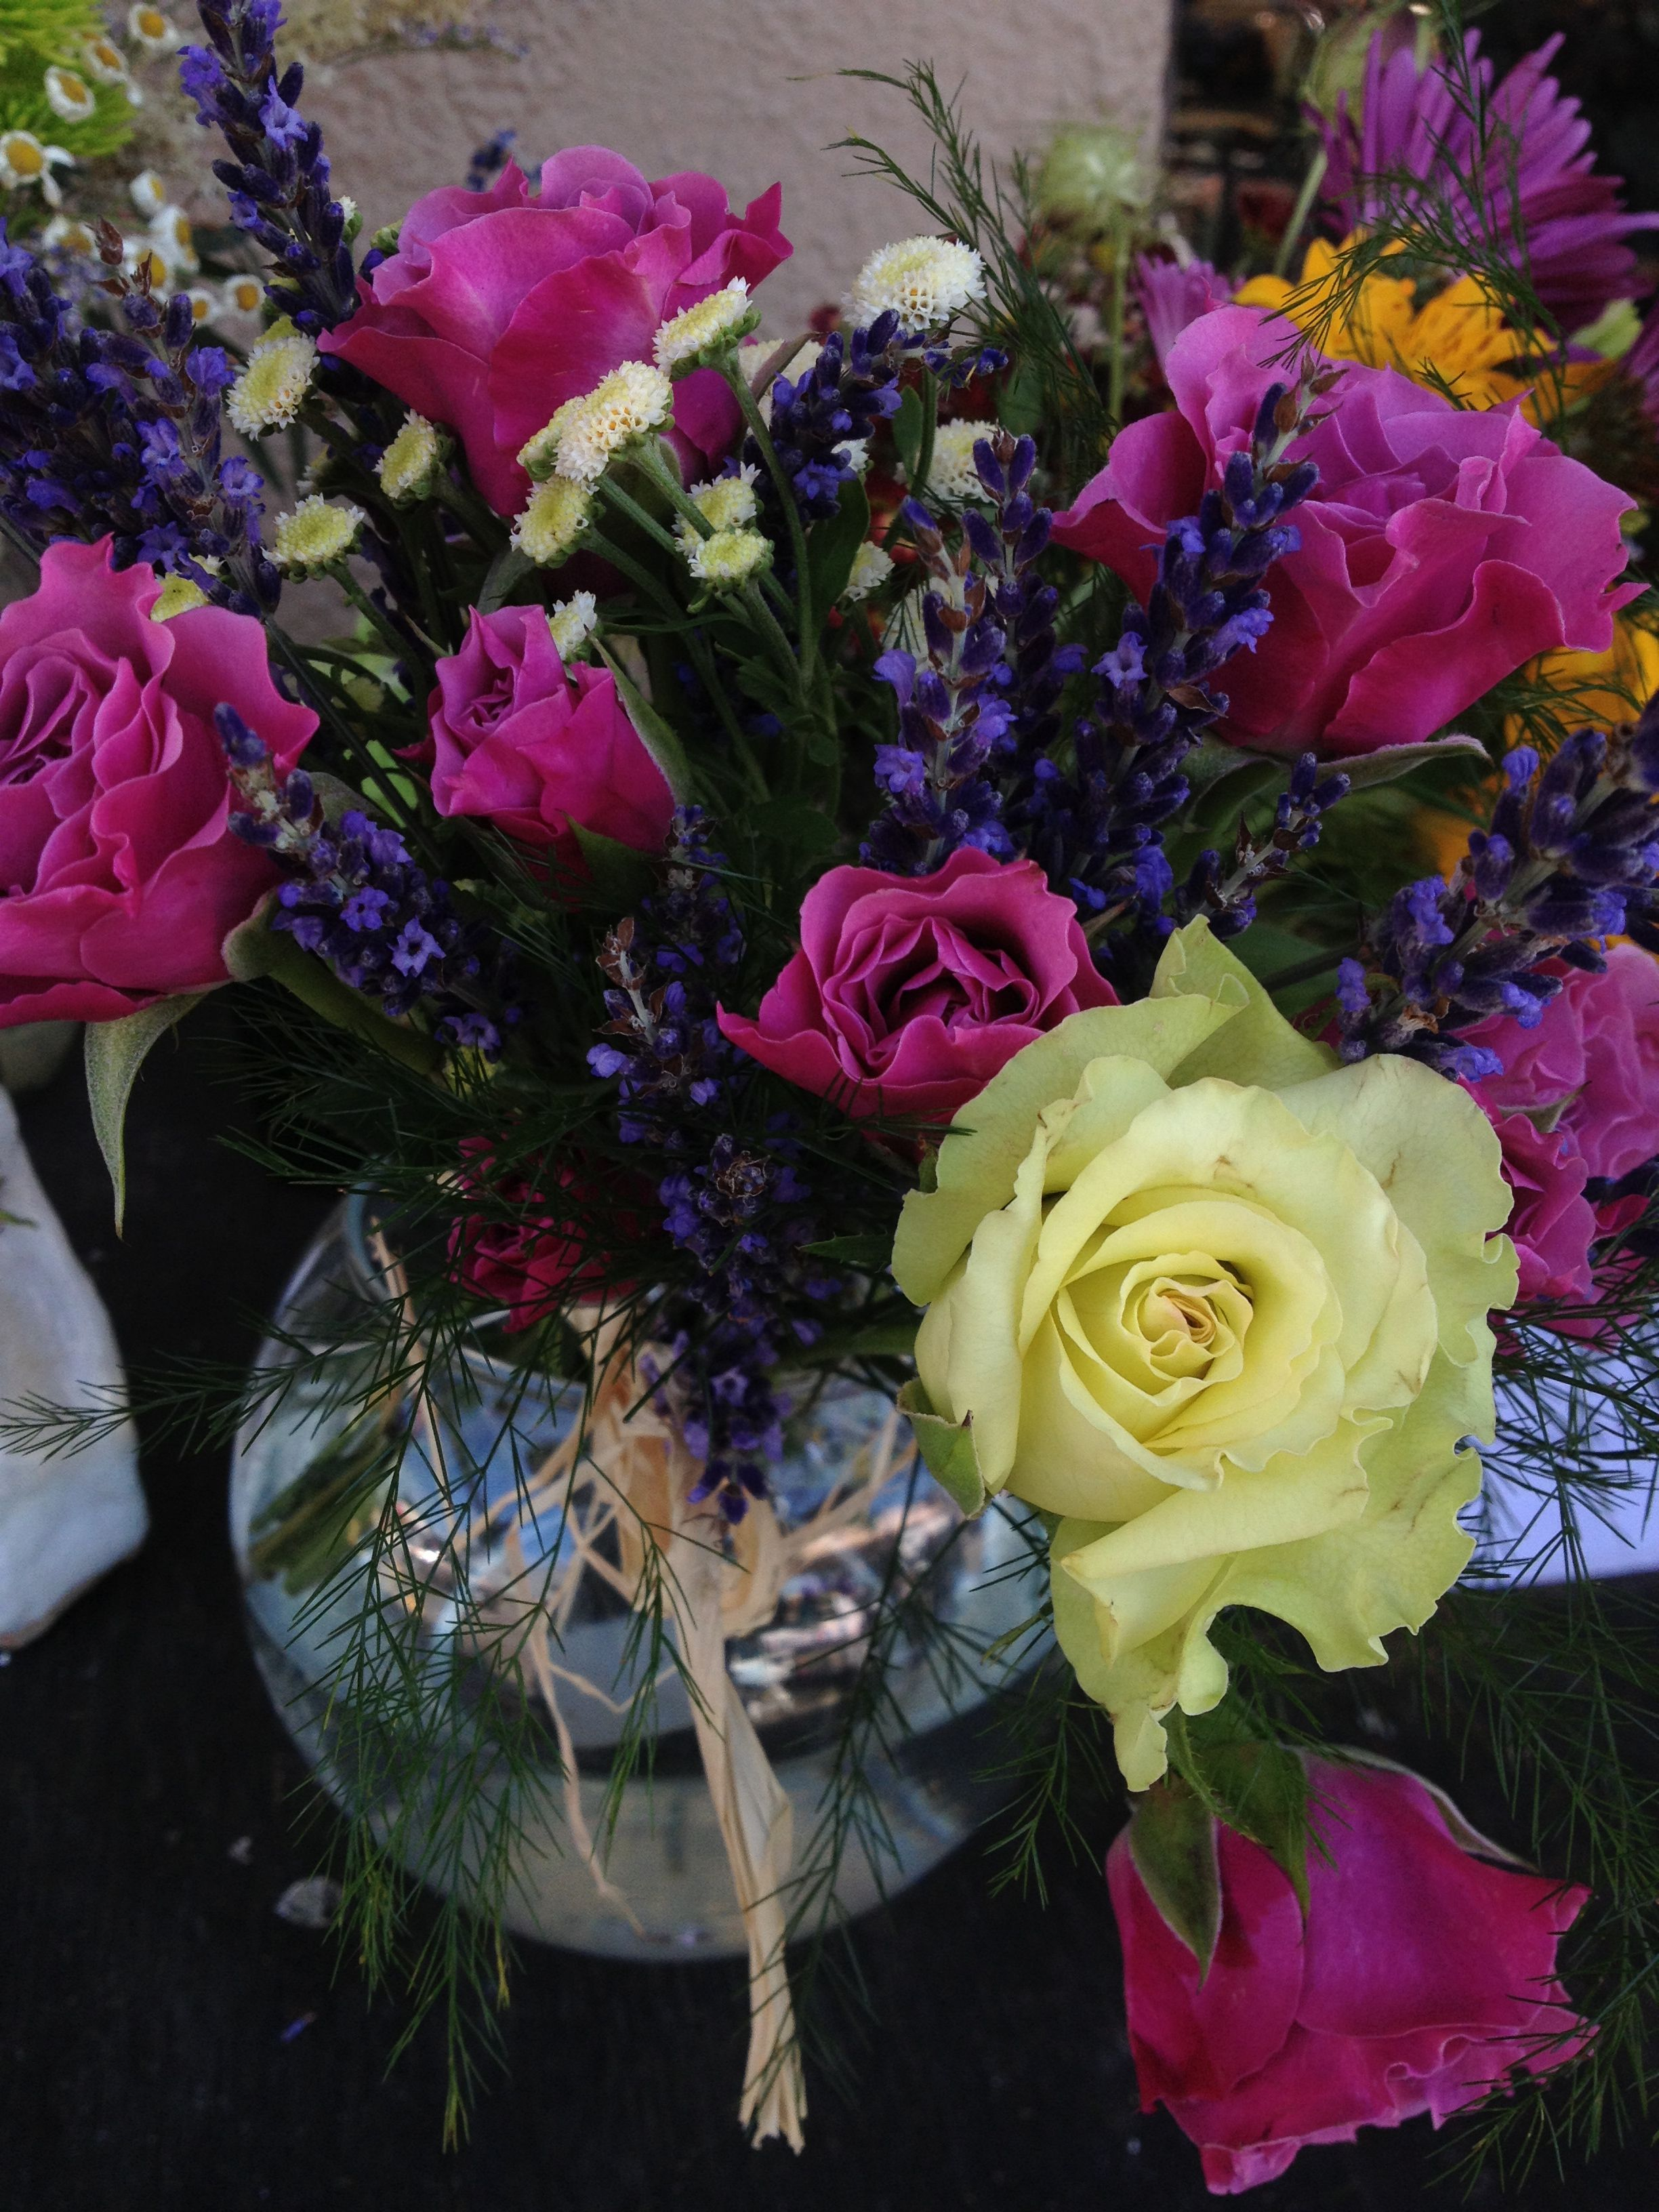 Garden roses, lavender and chamomile =beautifully fragrant